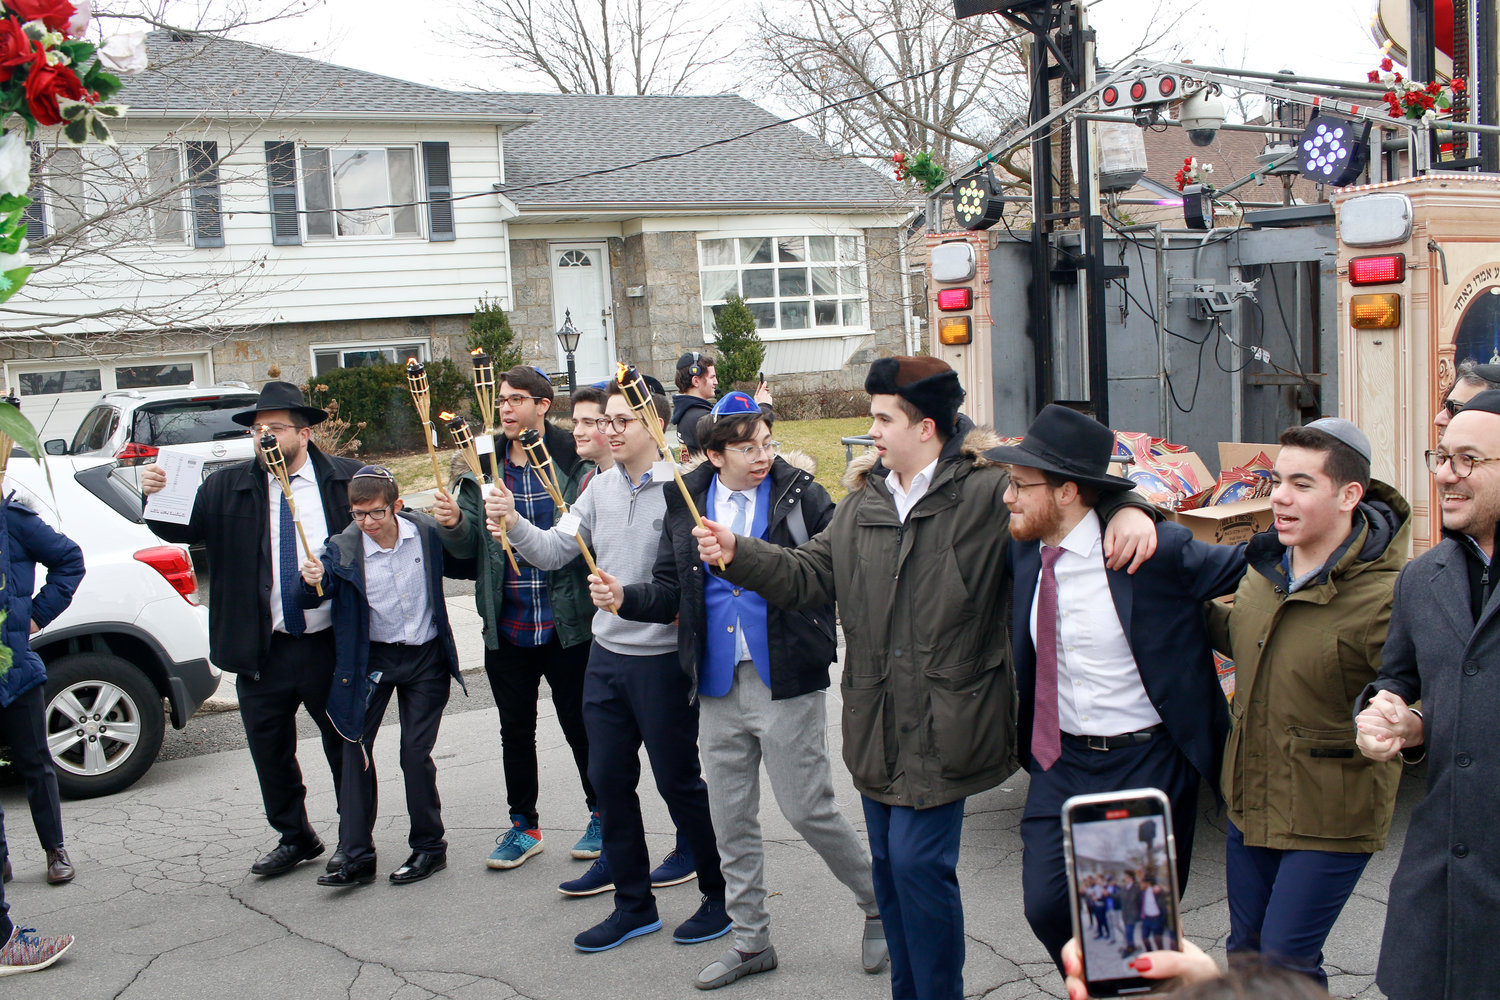 The Torah dedication celebration continued as a procession proceeded on Church Avenue to Congregation Bais Tefilah on Edward Avenue 